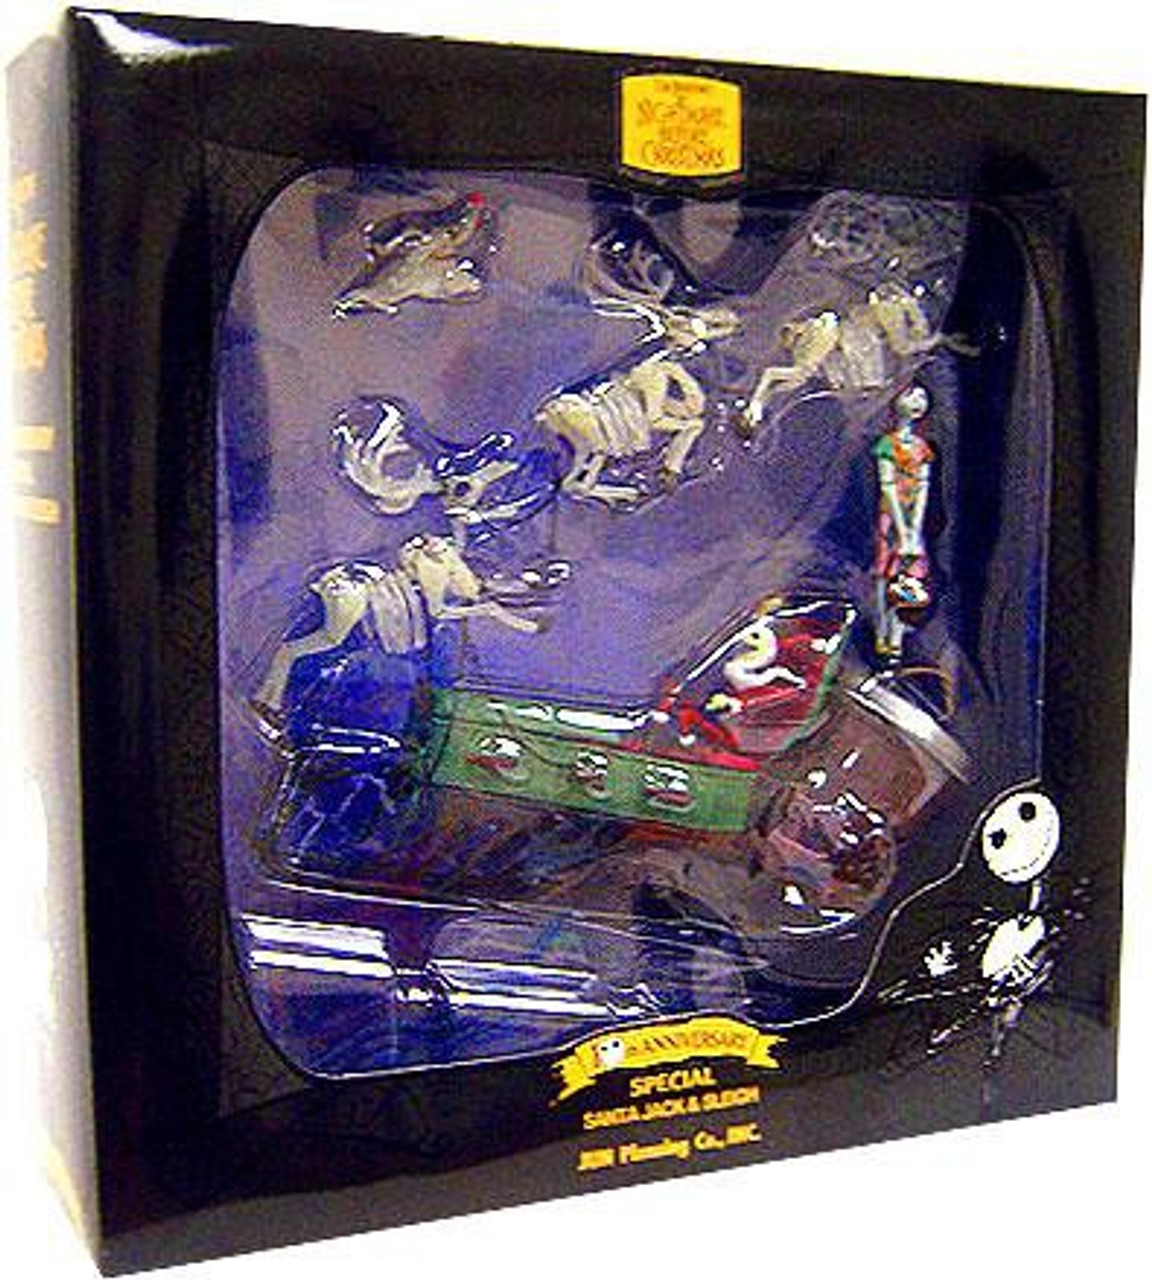 NECA The Nightmare Before Christmas 10th Anniversary Santa Jack & Sleigh Action Figure